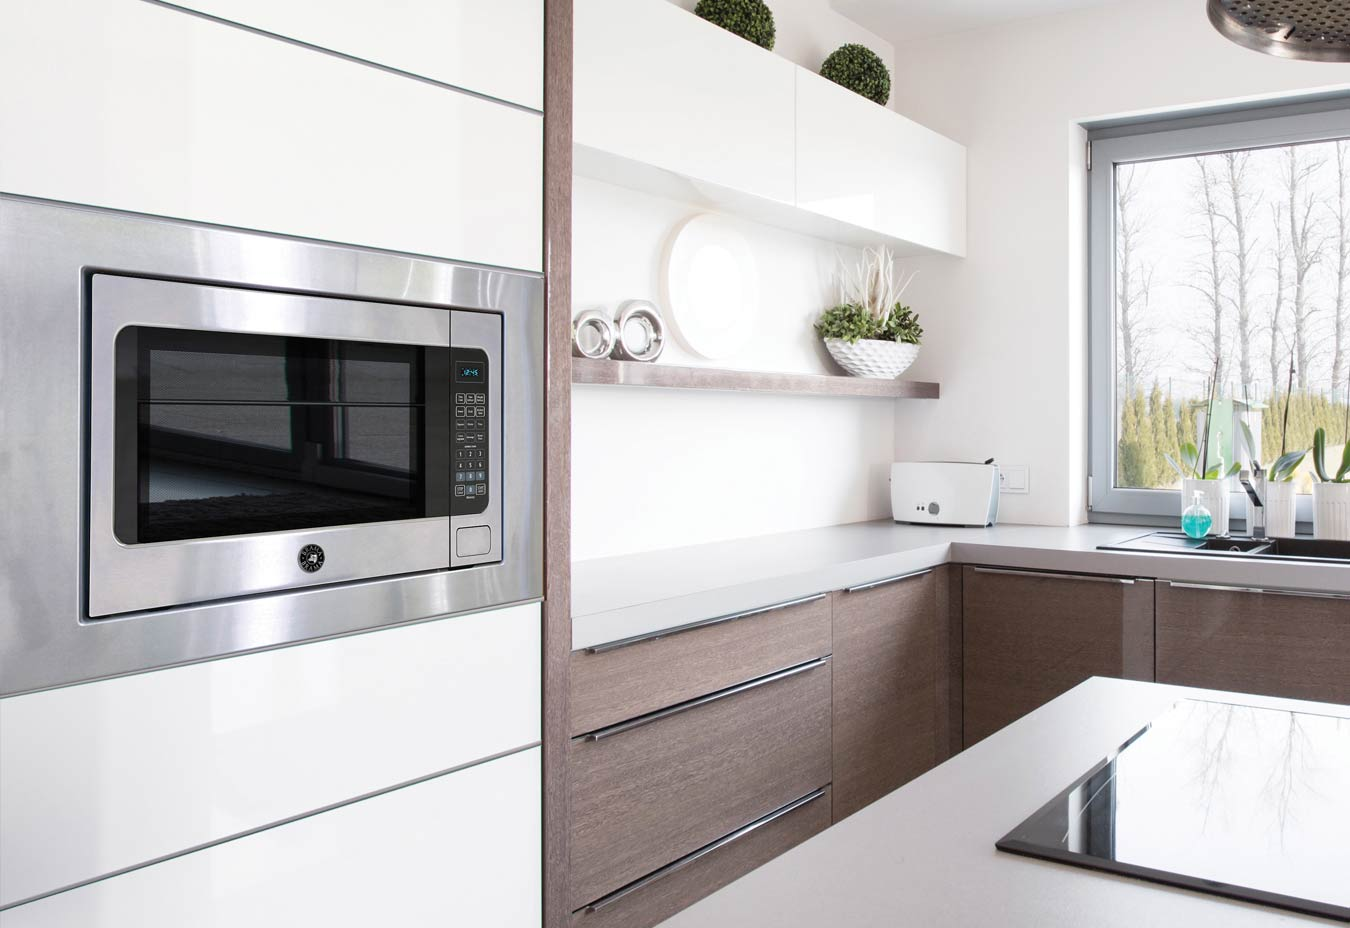 microwave oven installed into cabinet